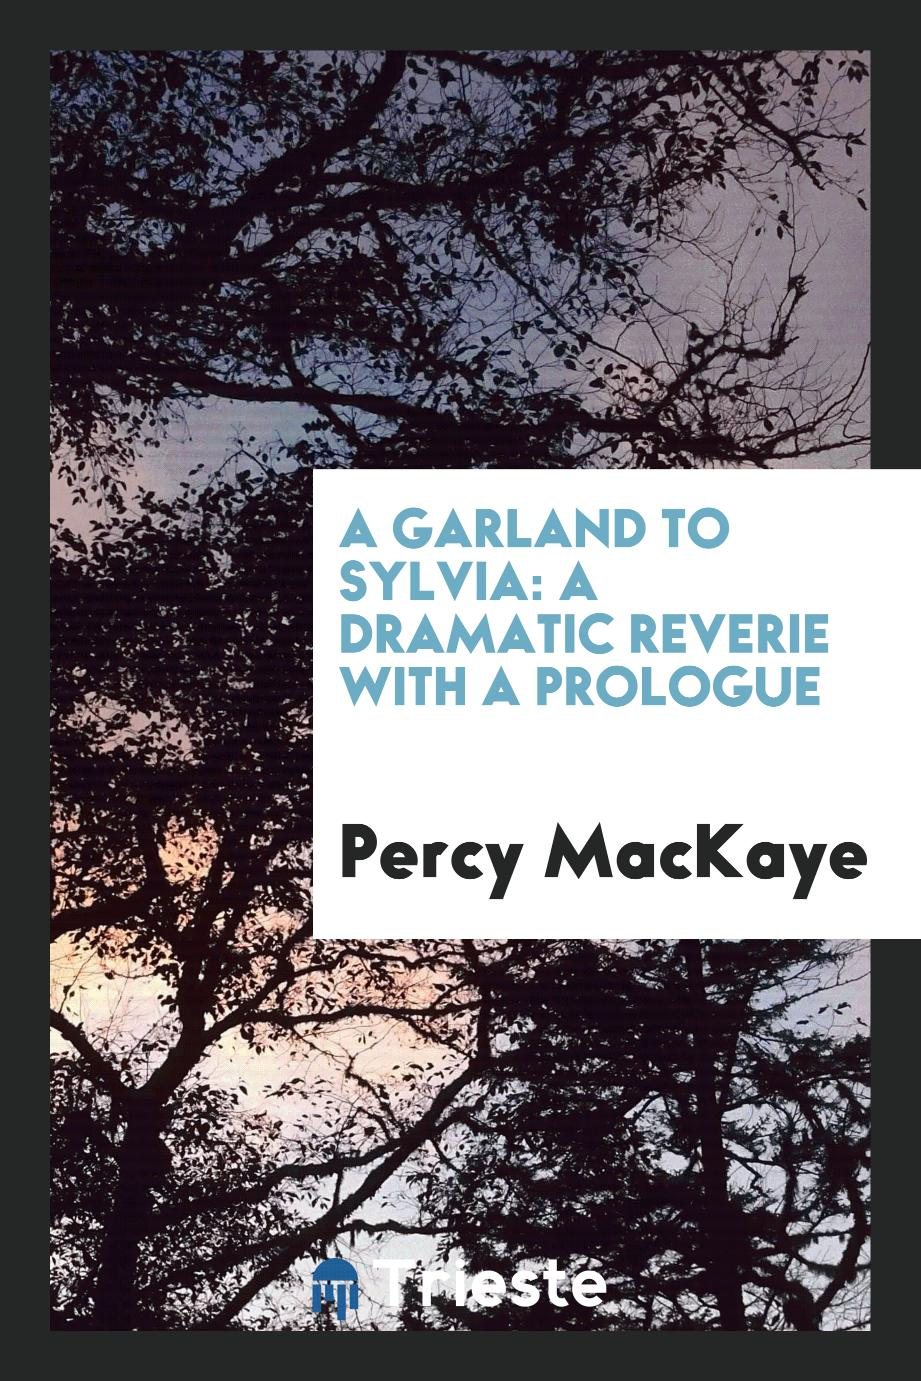 Percy MacKaye - A garland to Sylvia: a dramatic reverie with a prologue